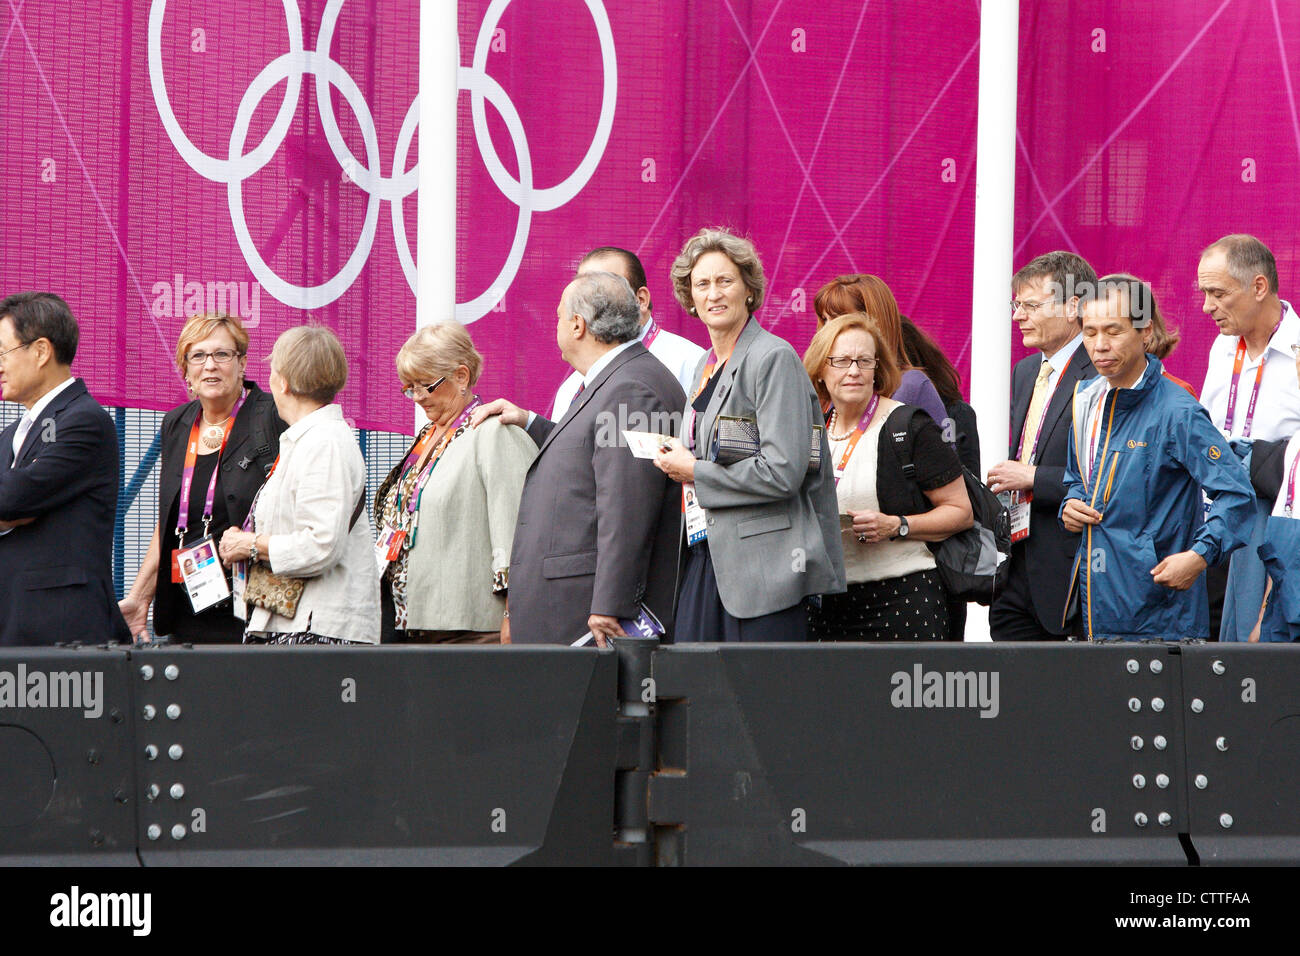 IOC Olympic delegates queue outside the Hilton Hotel for buses to take them to the Olympic Stadium - Stock Image